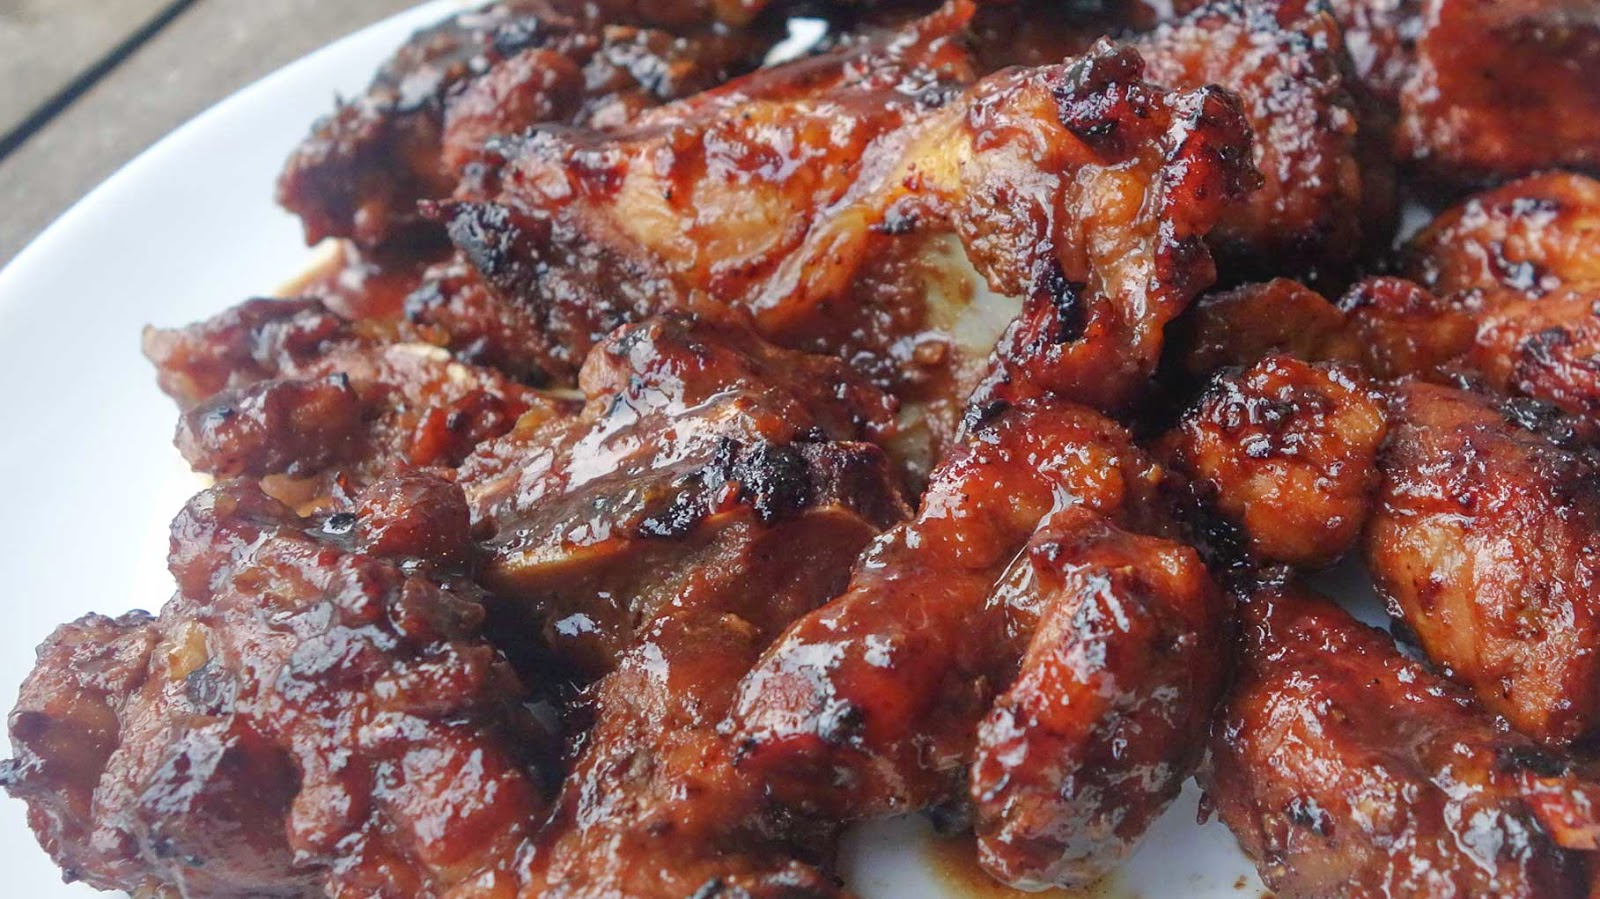 Wok-cooked Pork Ribs and a simple recipe for Orange and Honey Pork Ribs